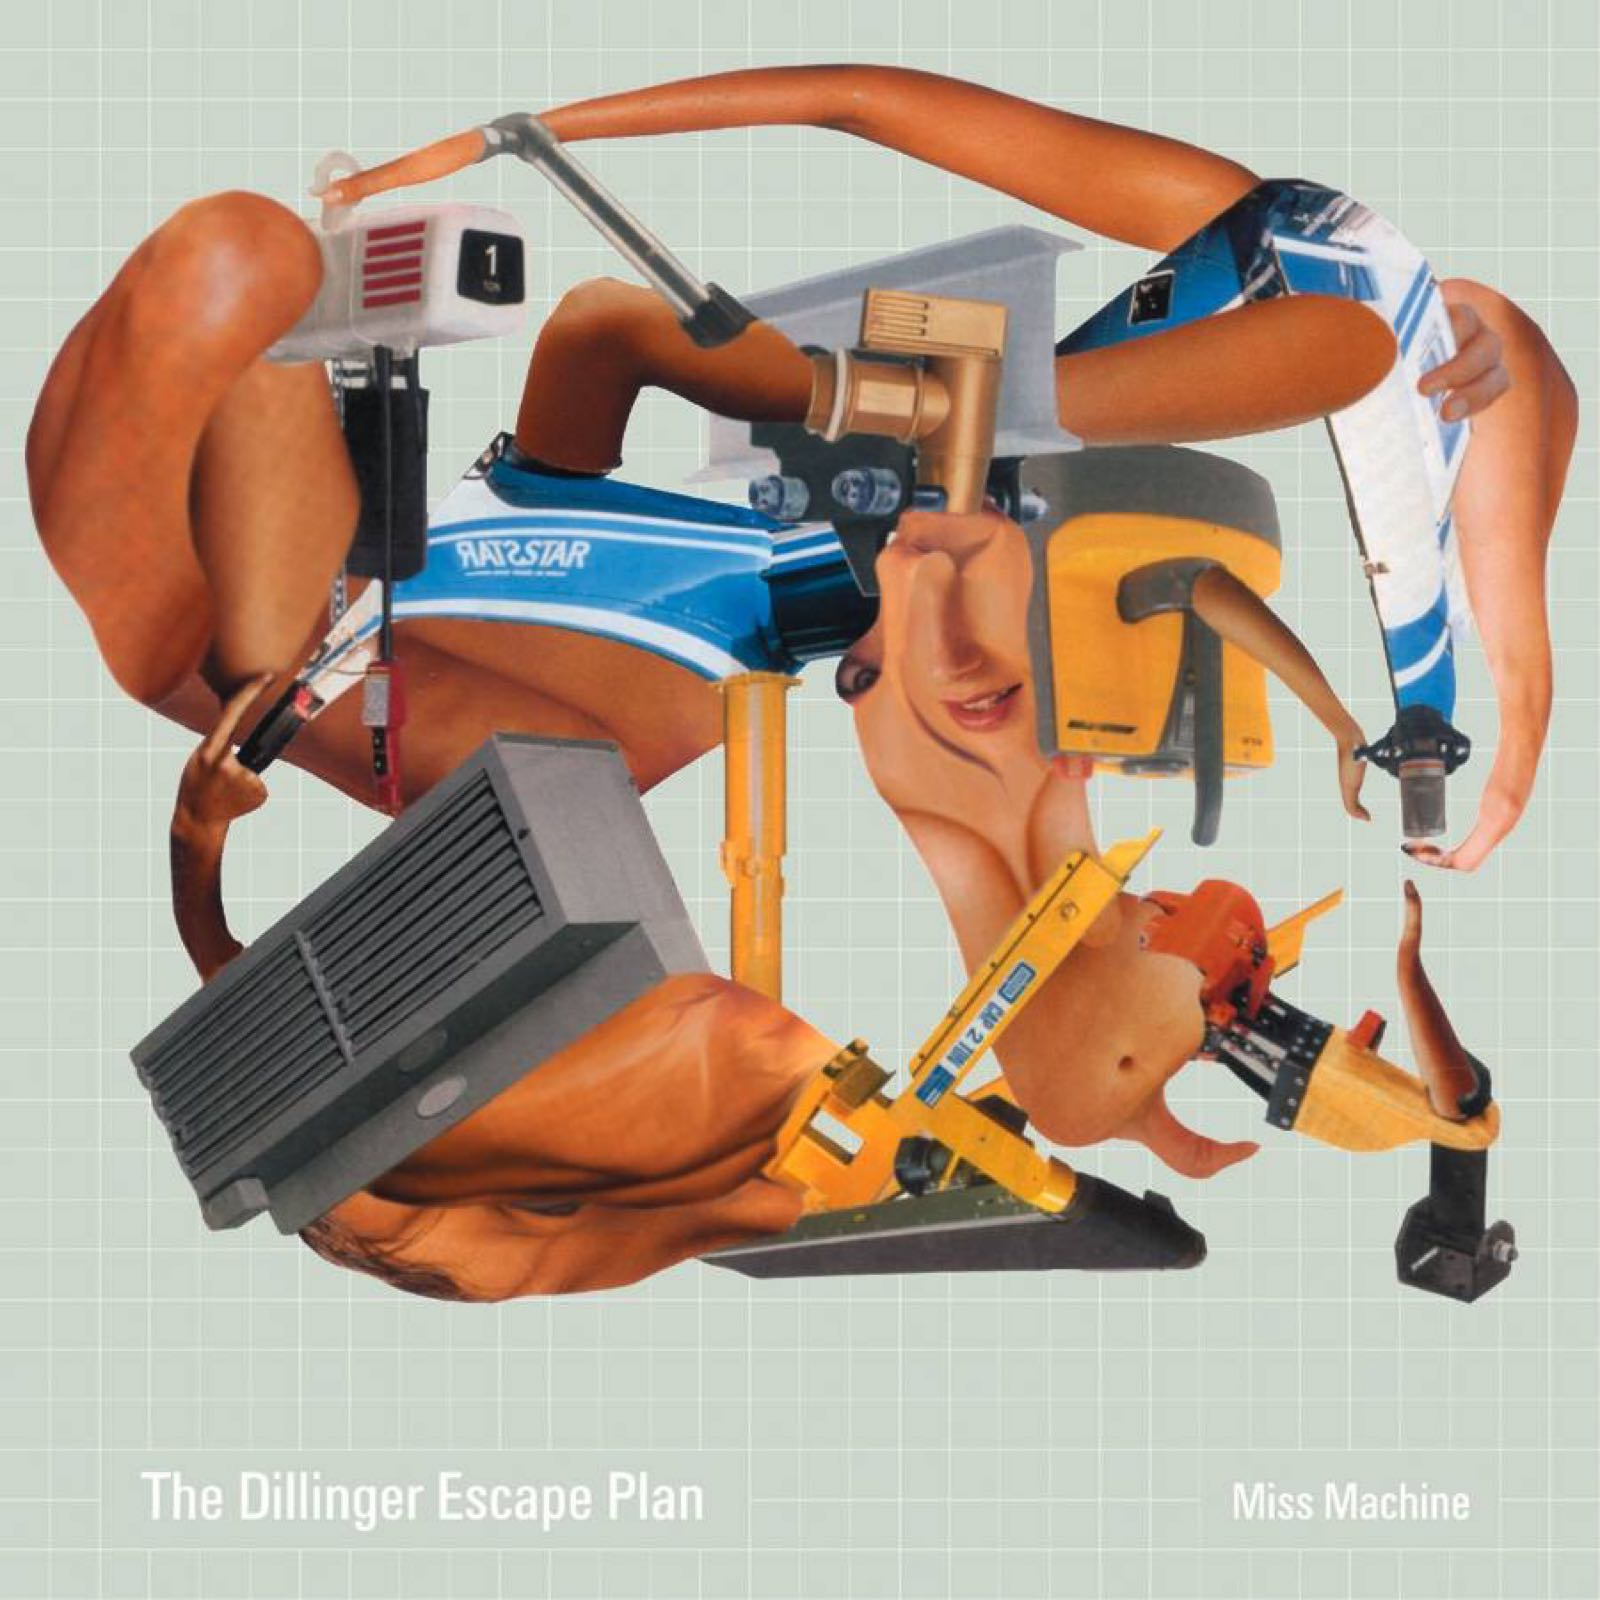 The Dillinger Escape Plan - Miss Machine [LP] (Coke Bottle Green with Rainbow Splatter Vinyl)